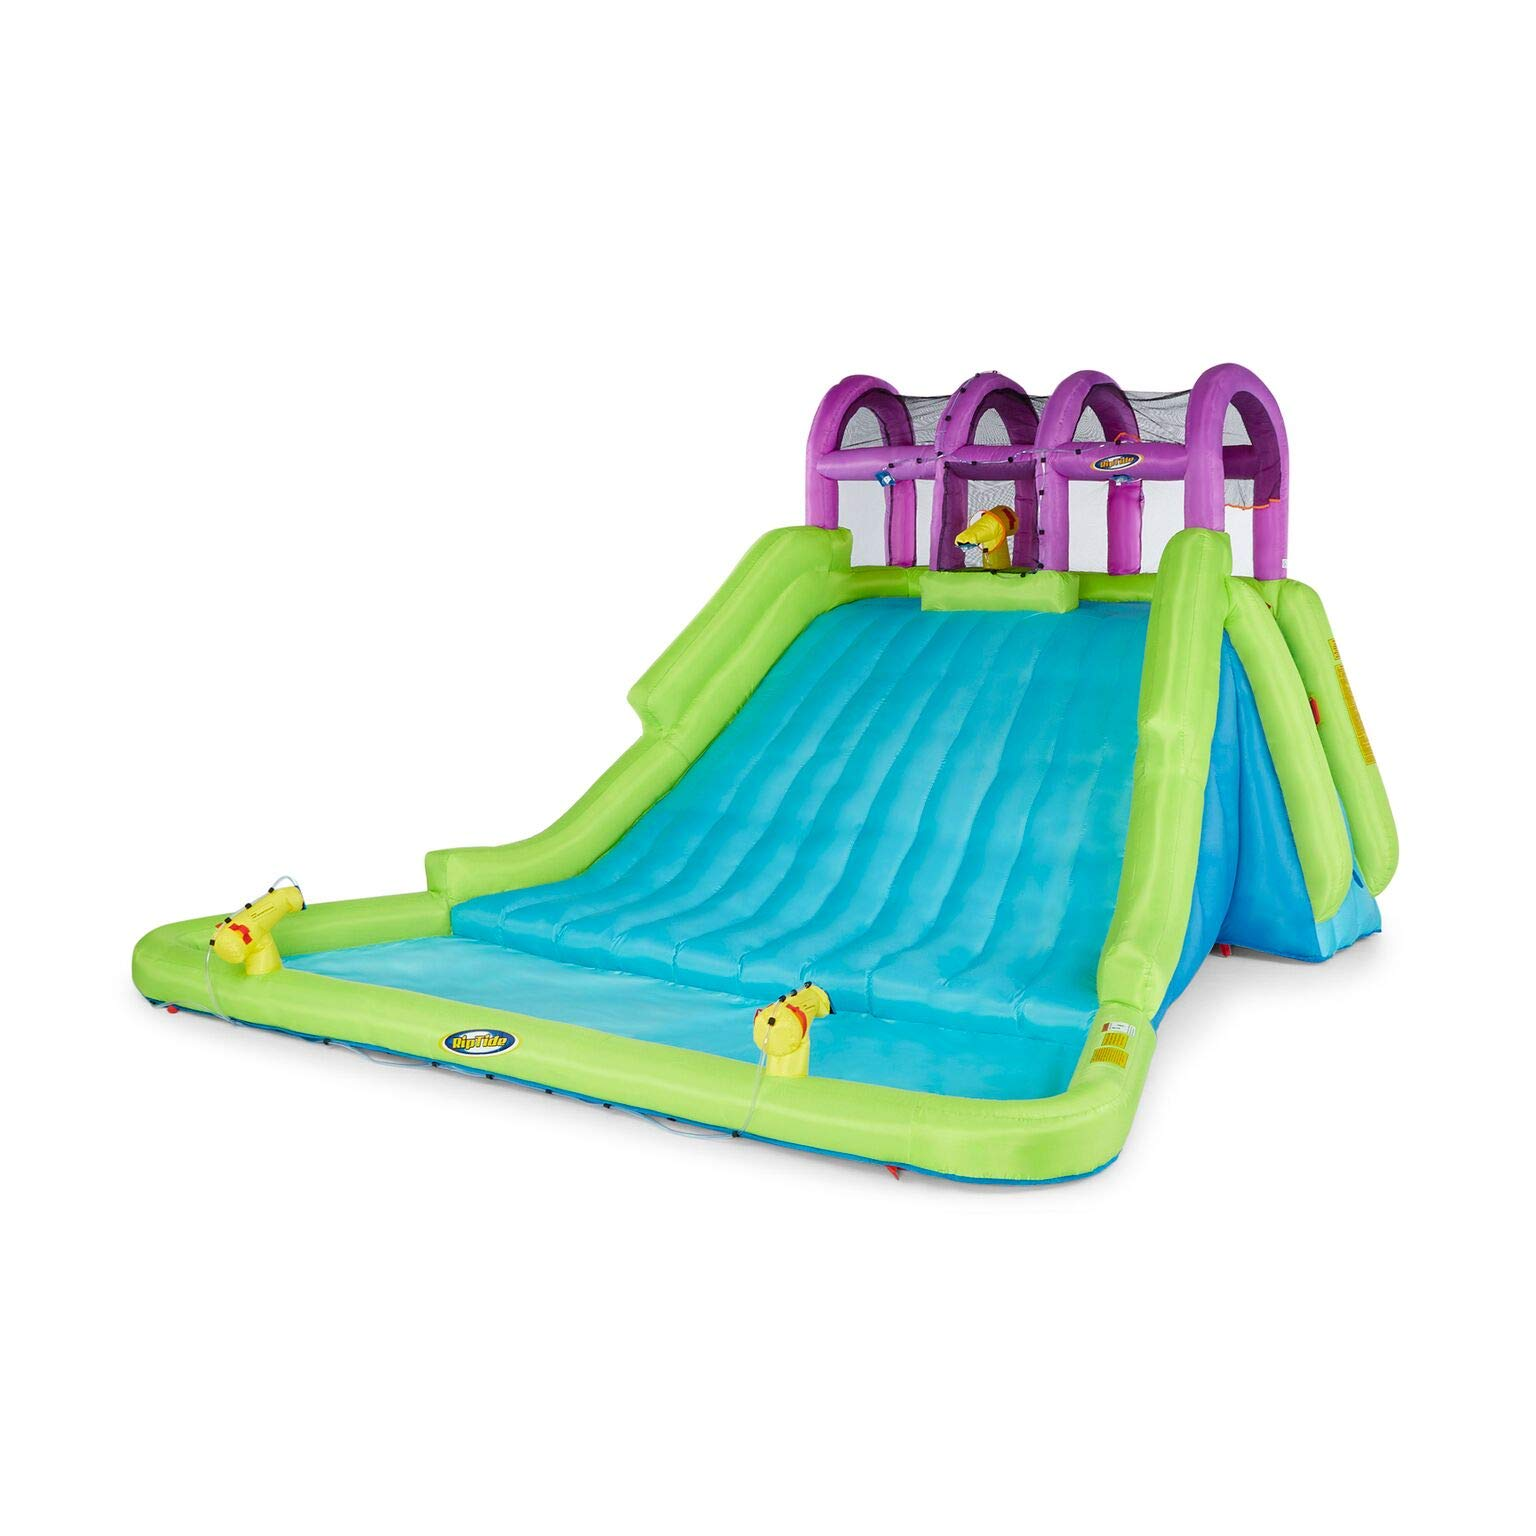 Kahuna Mega Blast Inflatable Backyard Kiddie Pool and Slide Water Park by Kahuna (Image #1)